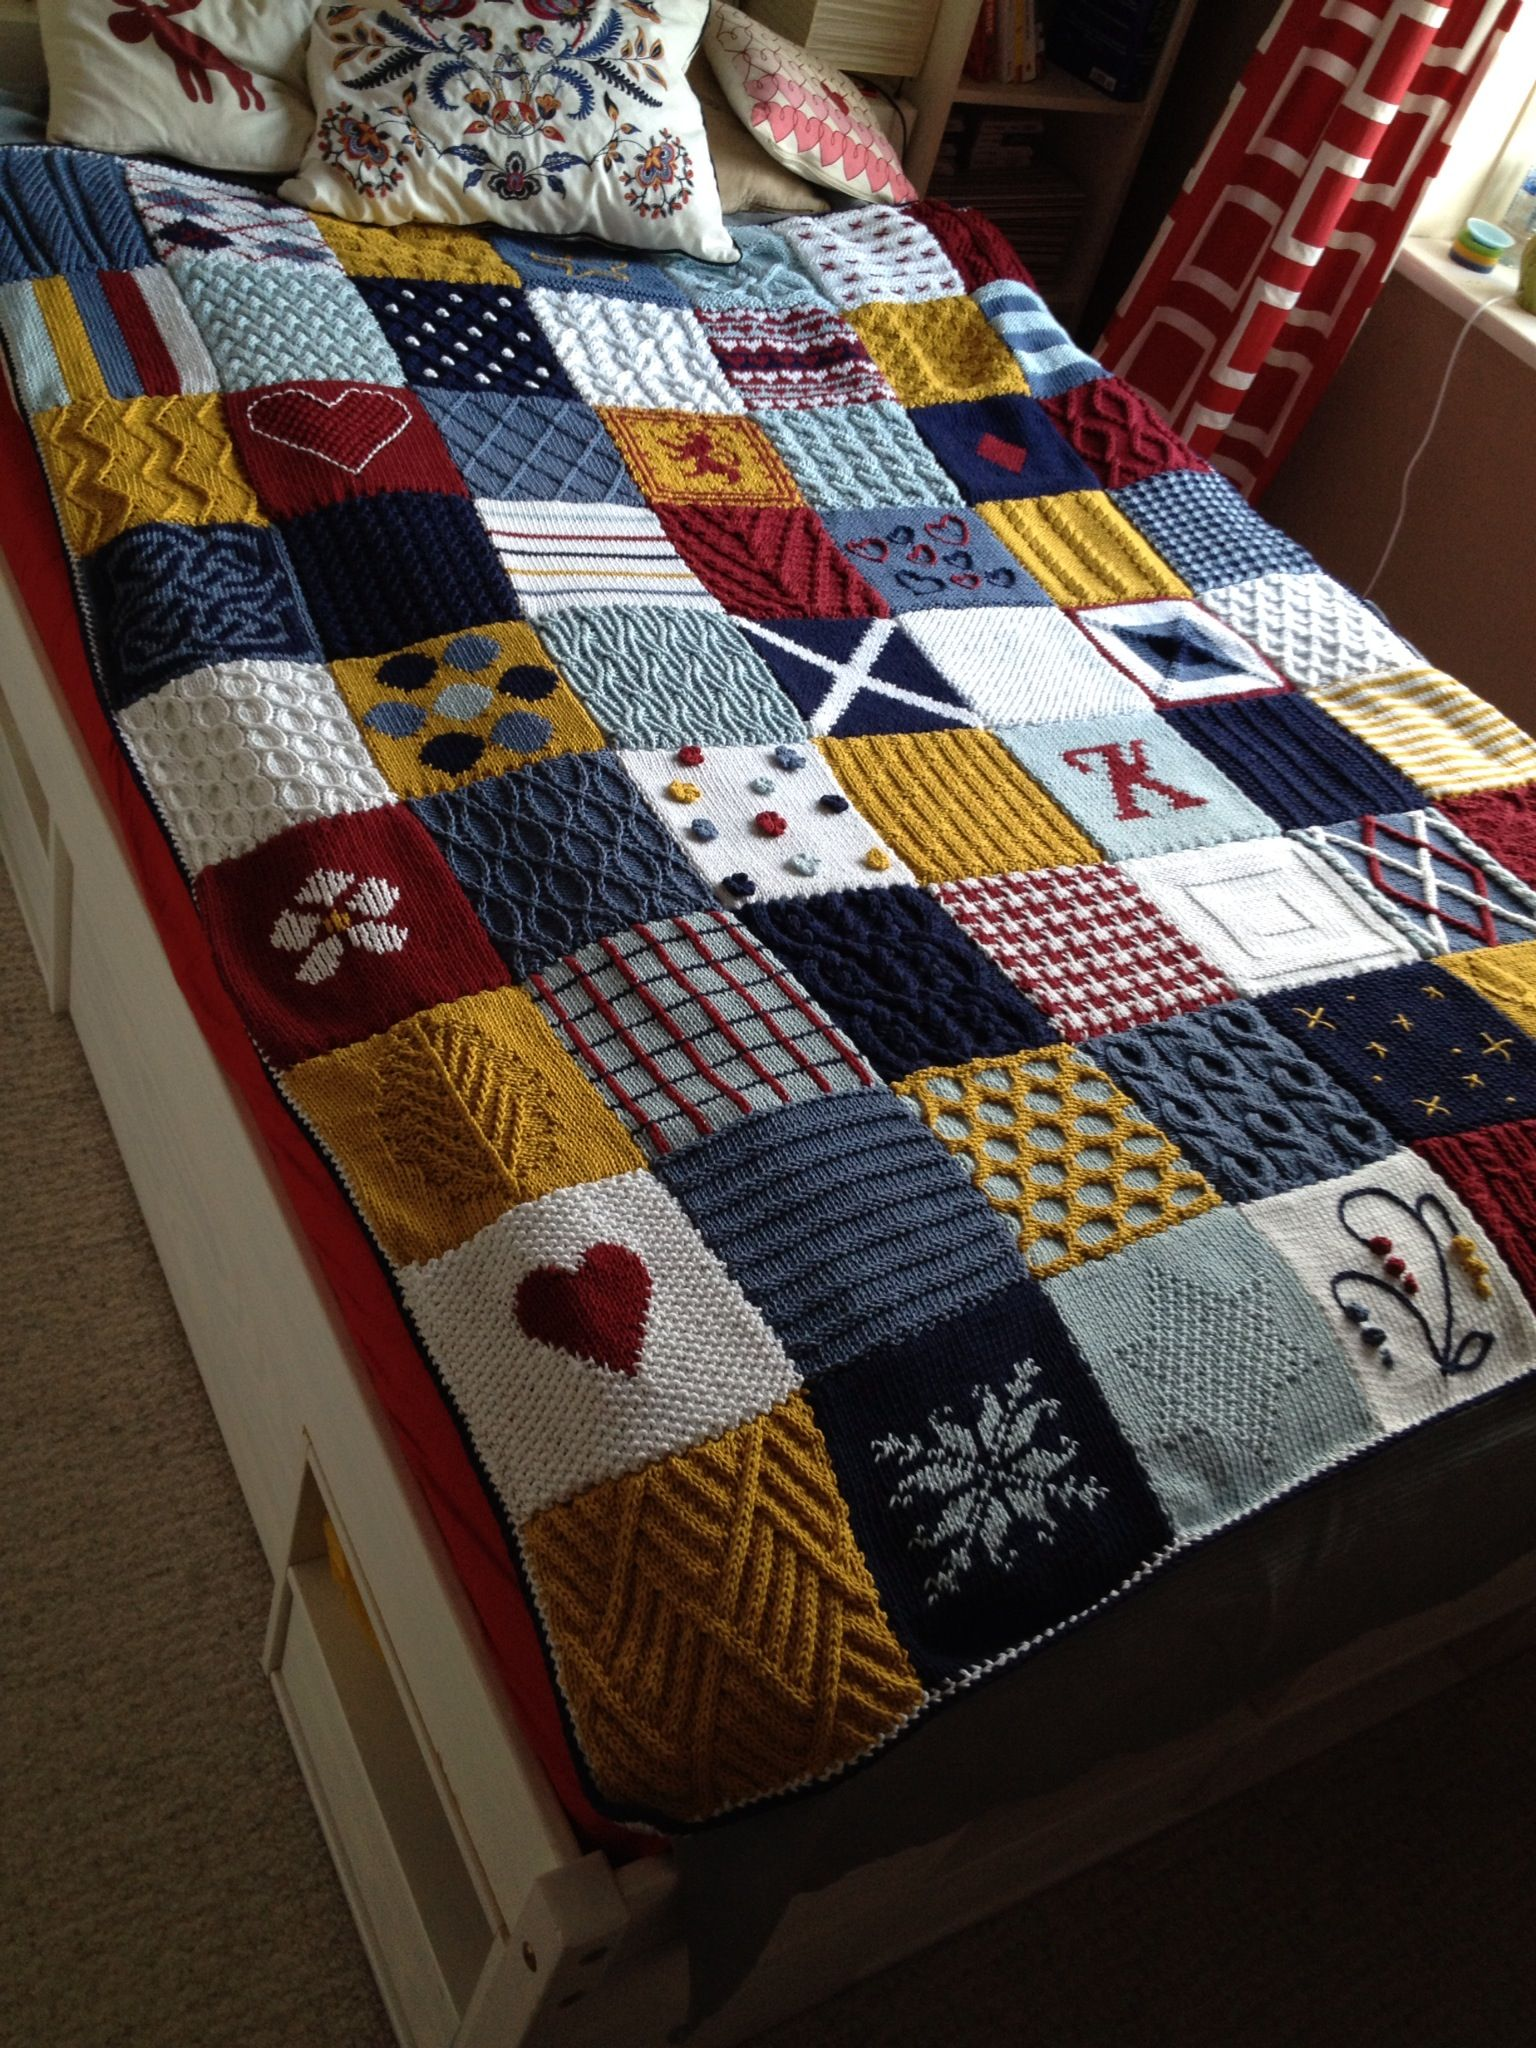 Knitting Patterns Blankets Patchwork : Again its knit & patchwork blanket but i love it!! Just pic for insp...